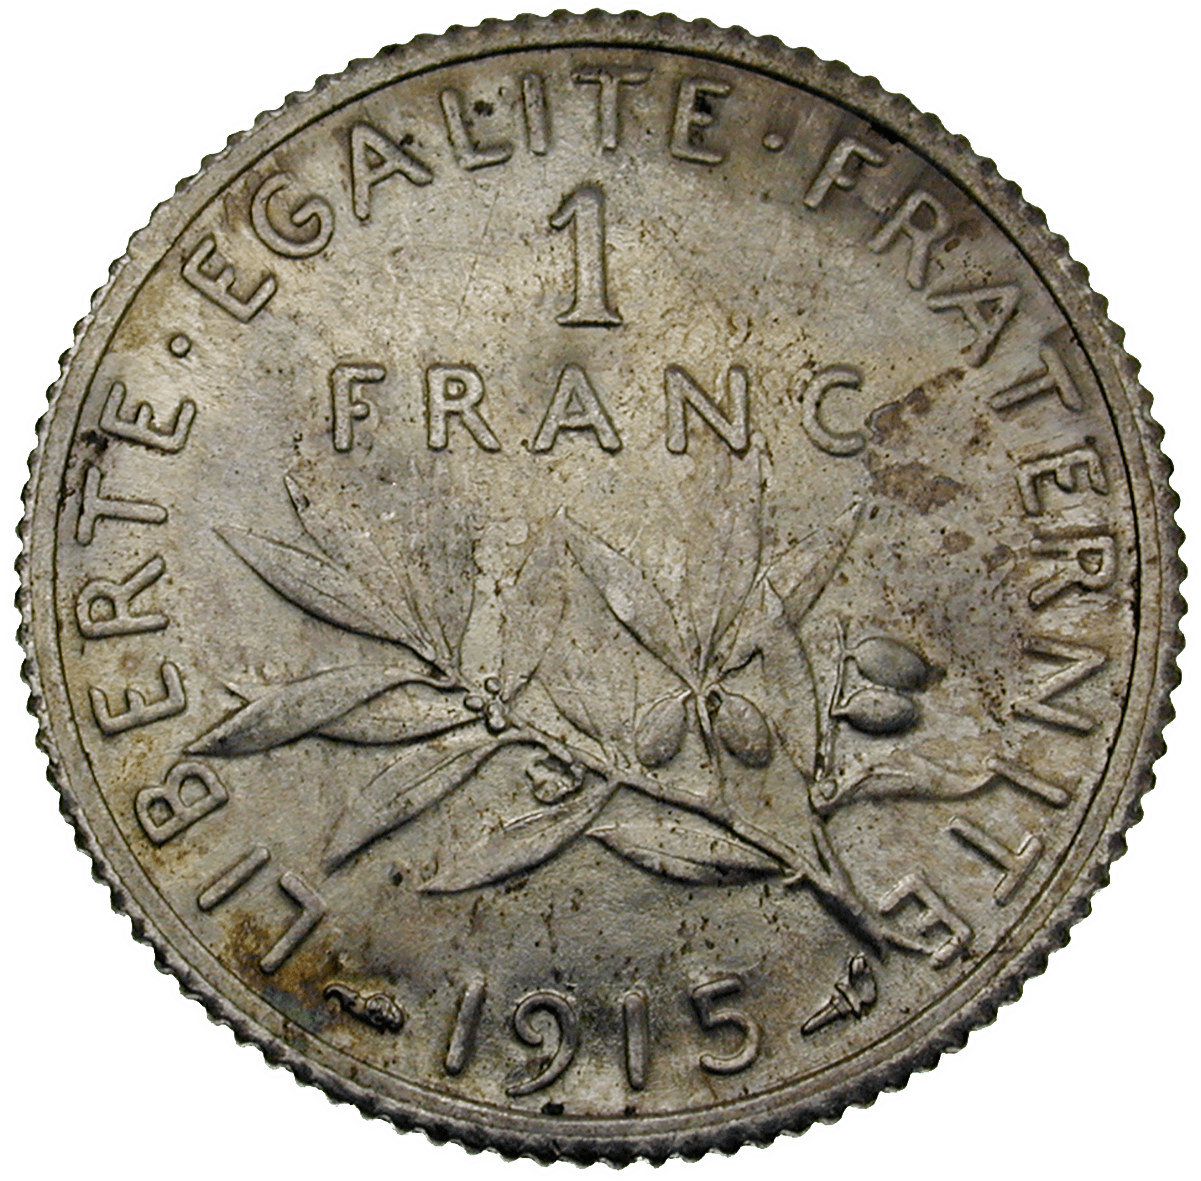 Republic of France, 1 Franc 1915 (reverse)